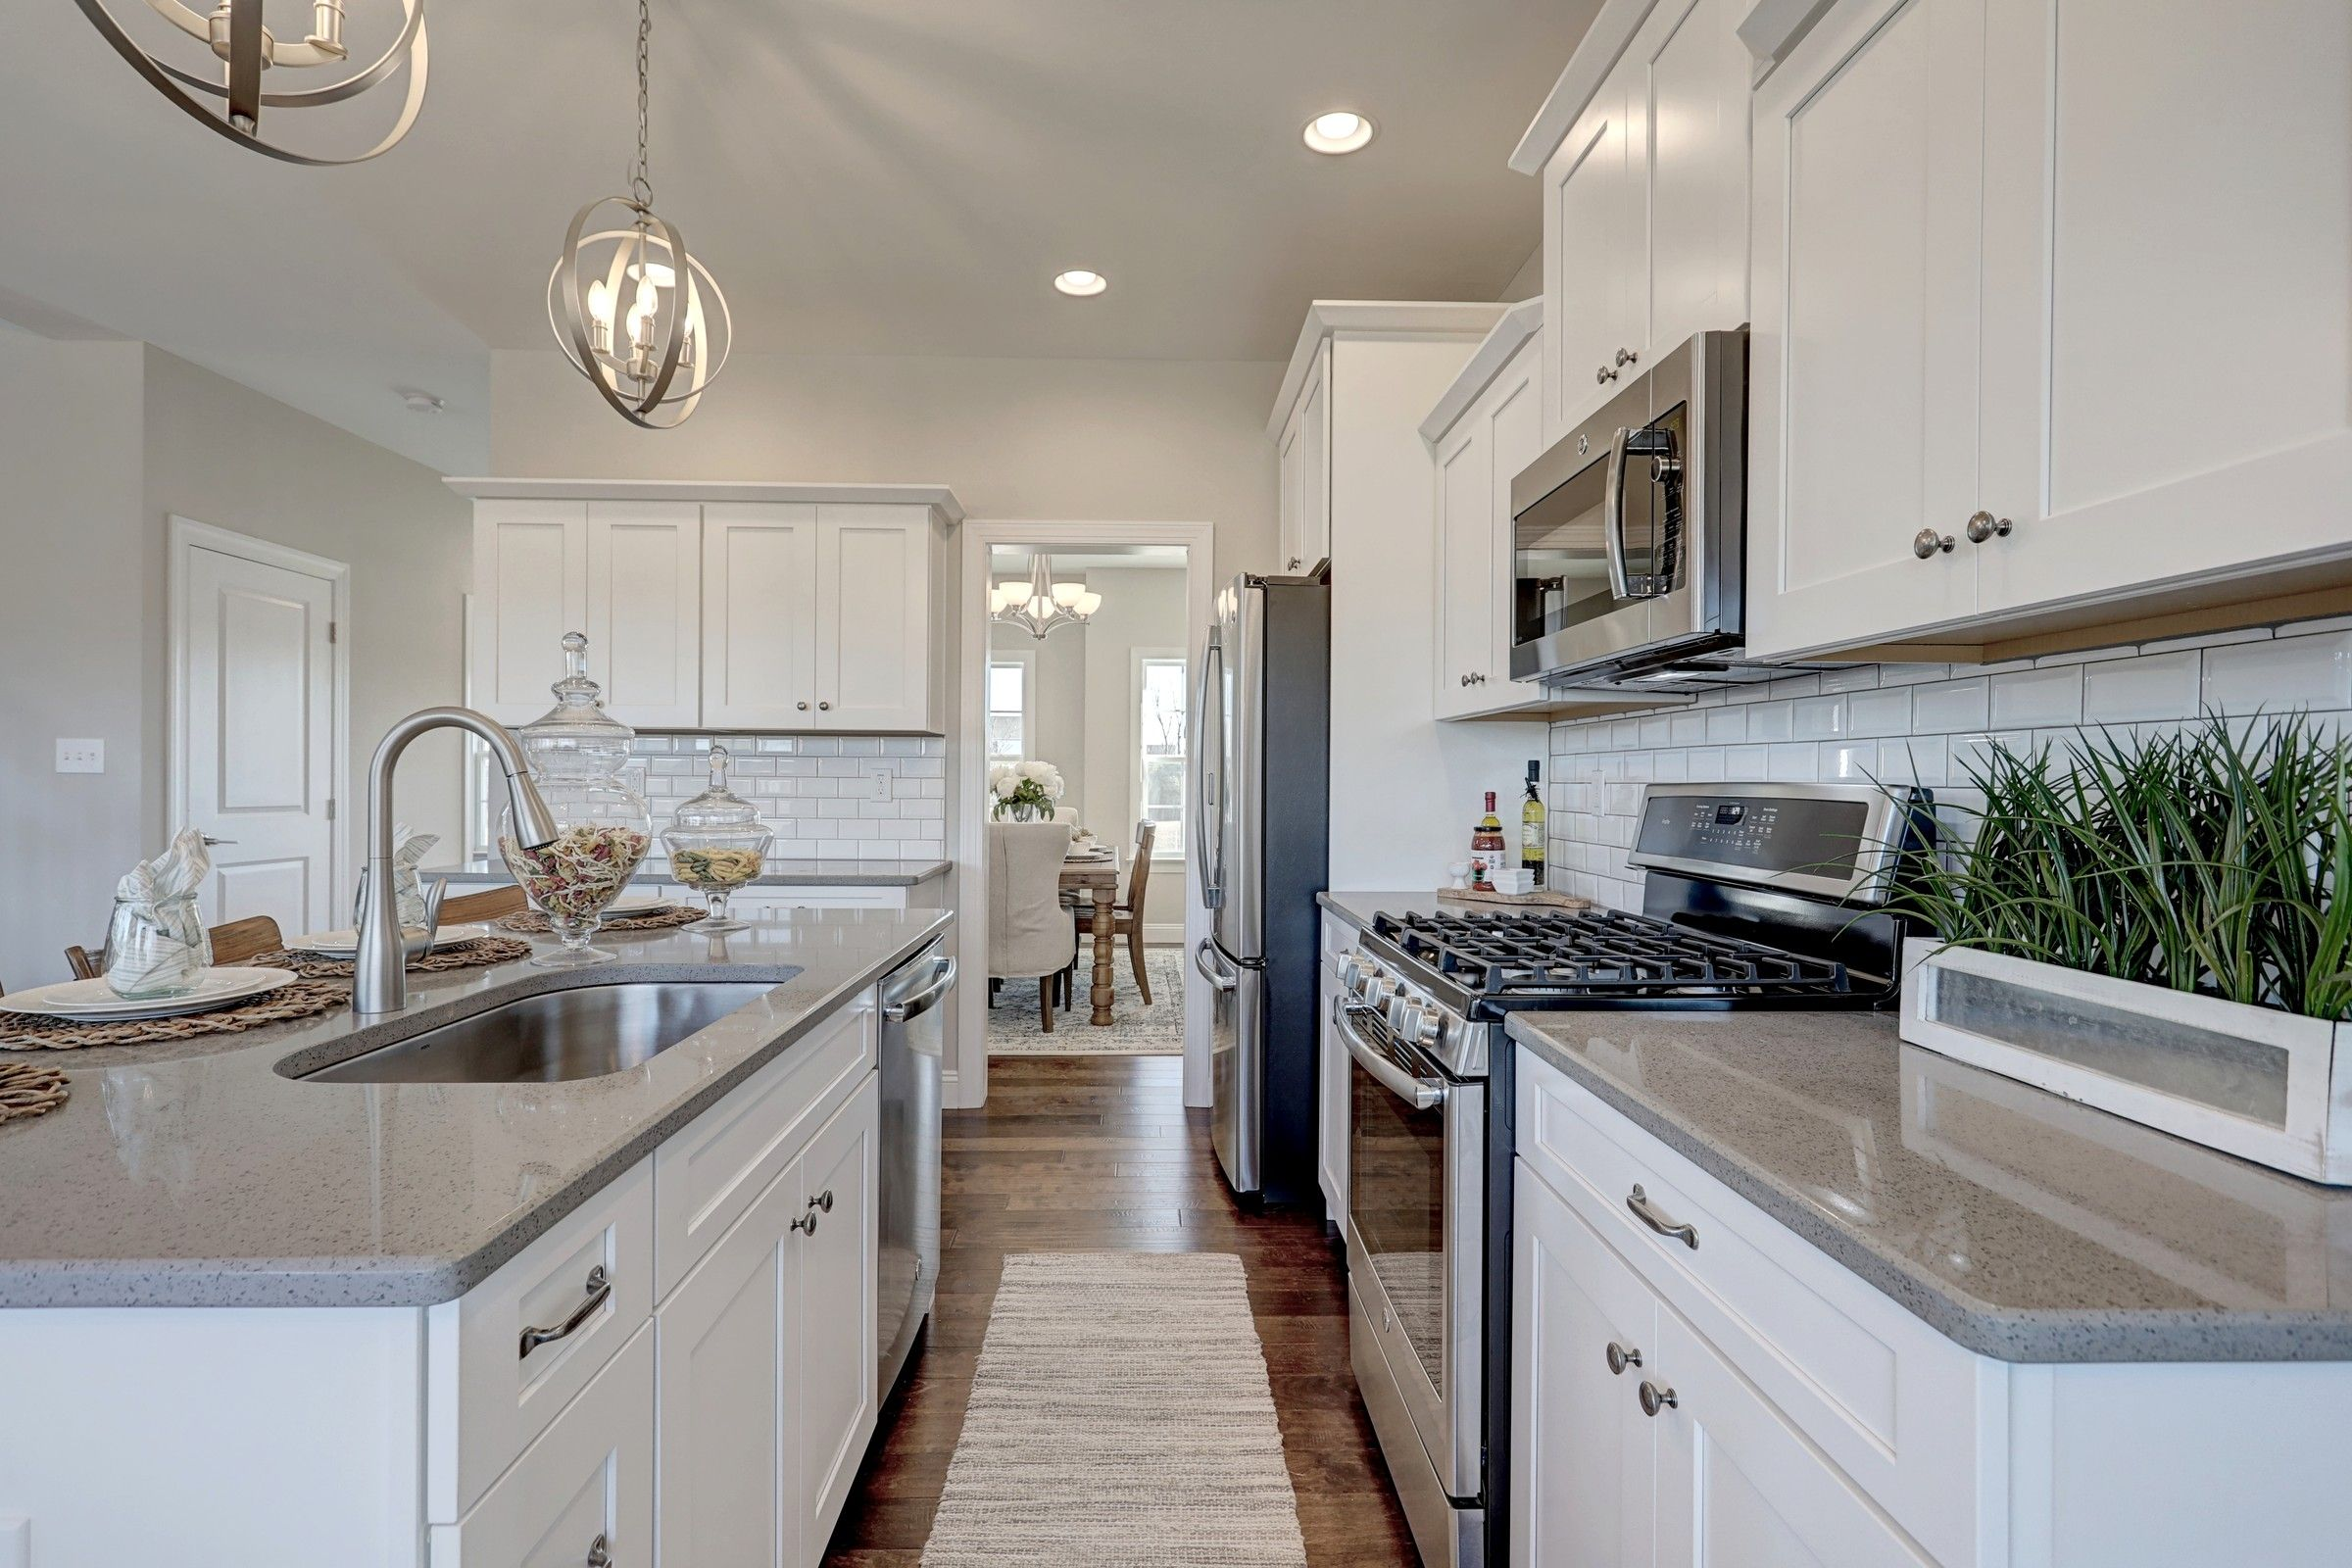 Kitchen featured in the Windsor Heritage By Keystone Custom Homes in Philadelphia, PA